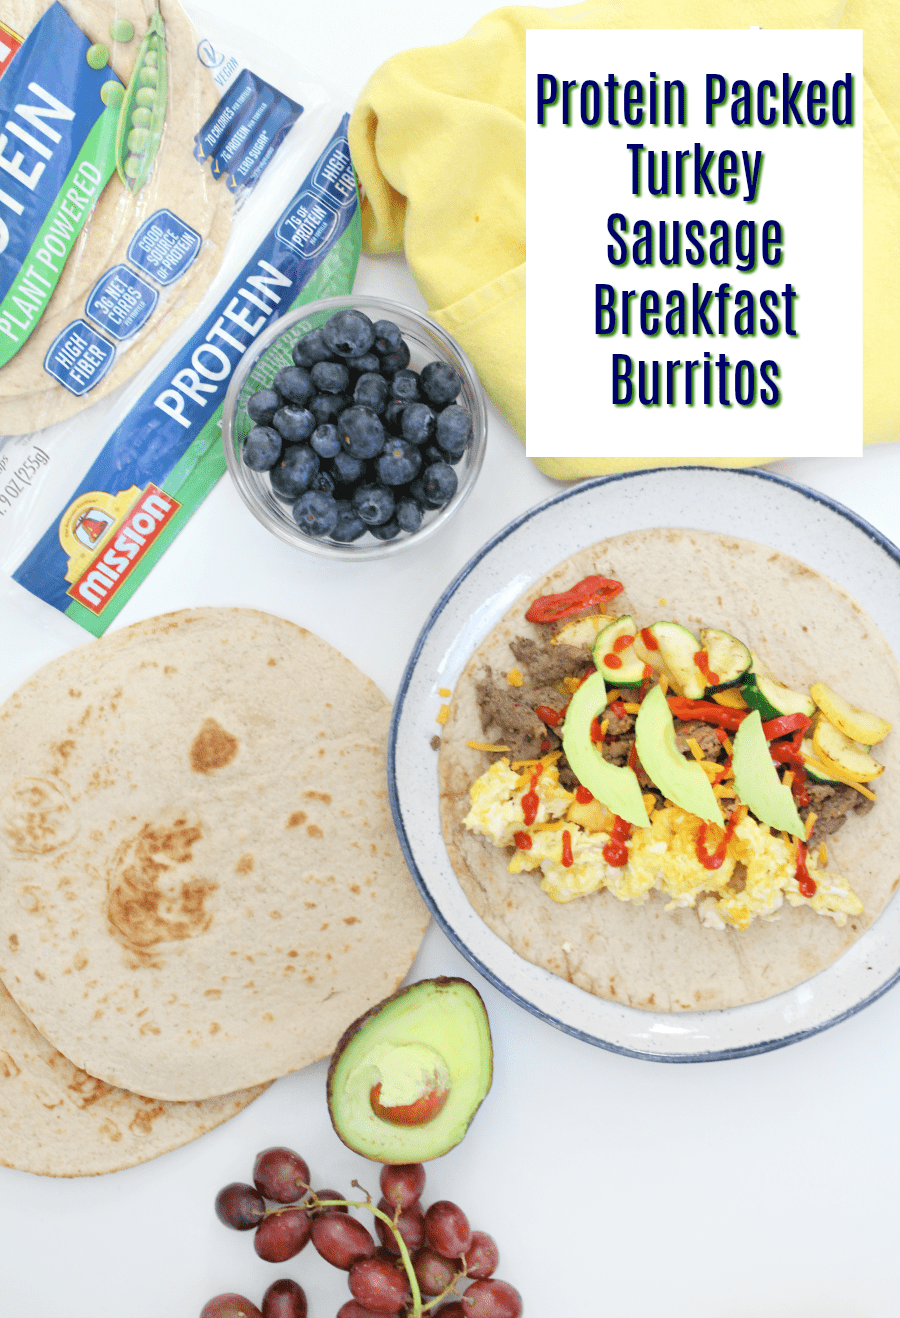 Protein Packed Turkey Sausage Breakfast Burritos